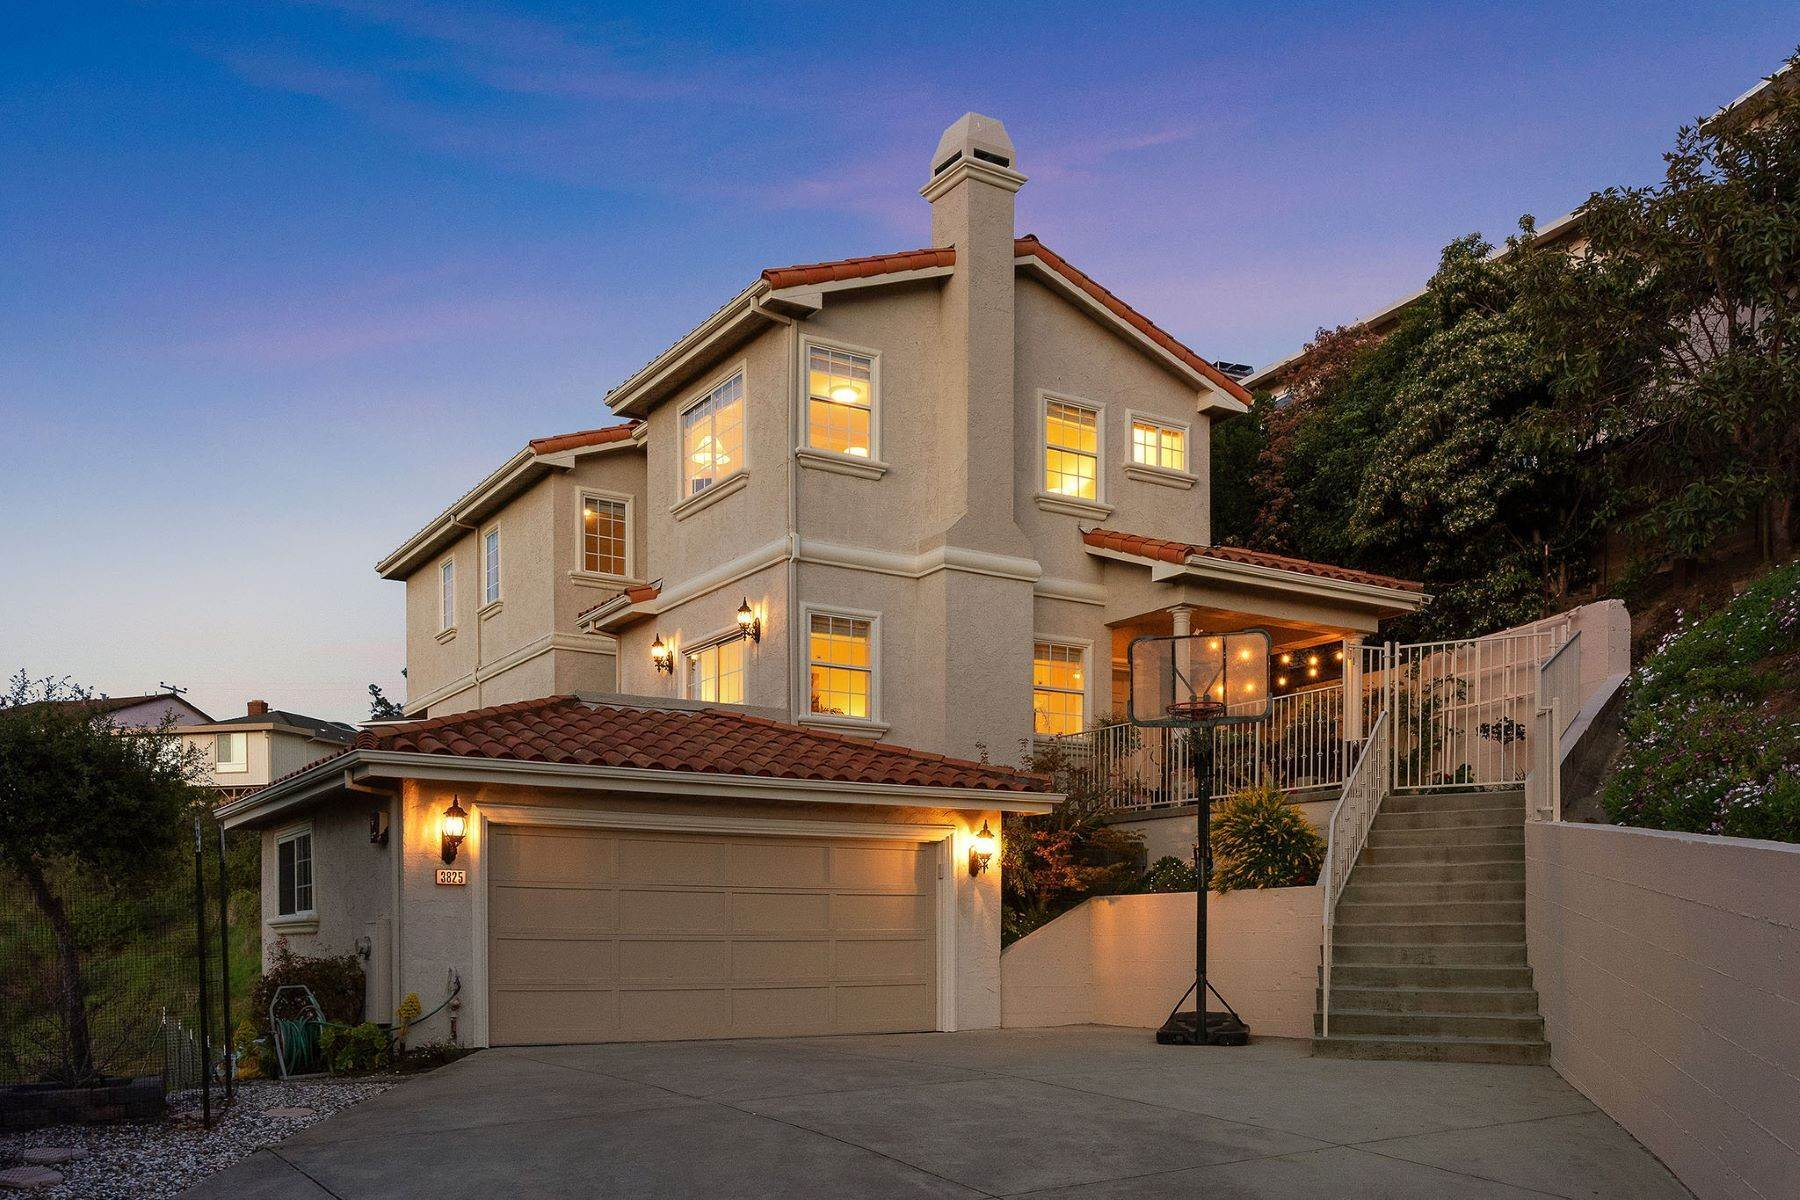 Single Family Homes のために 売買 アット Beautiful View Home On Quiet Street 3825 W Naughton Ave Belmont, カリフォルニア 94002 アメリカ